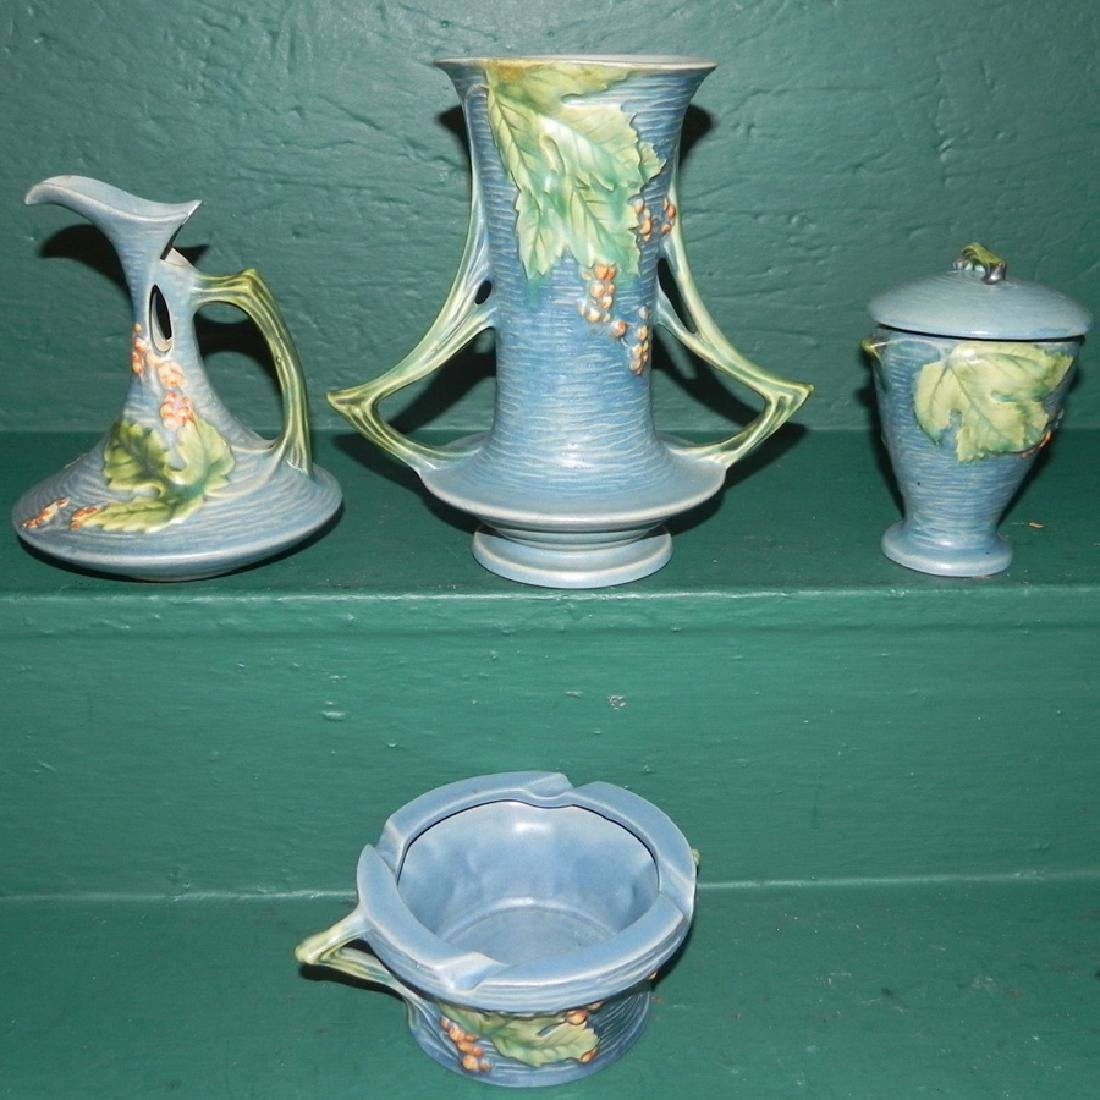 4 pieces of Roseville Bushberry pottery